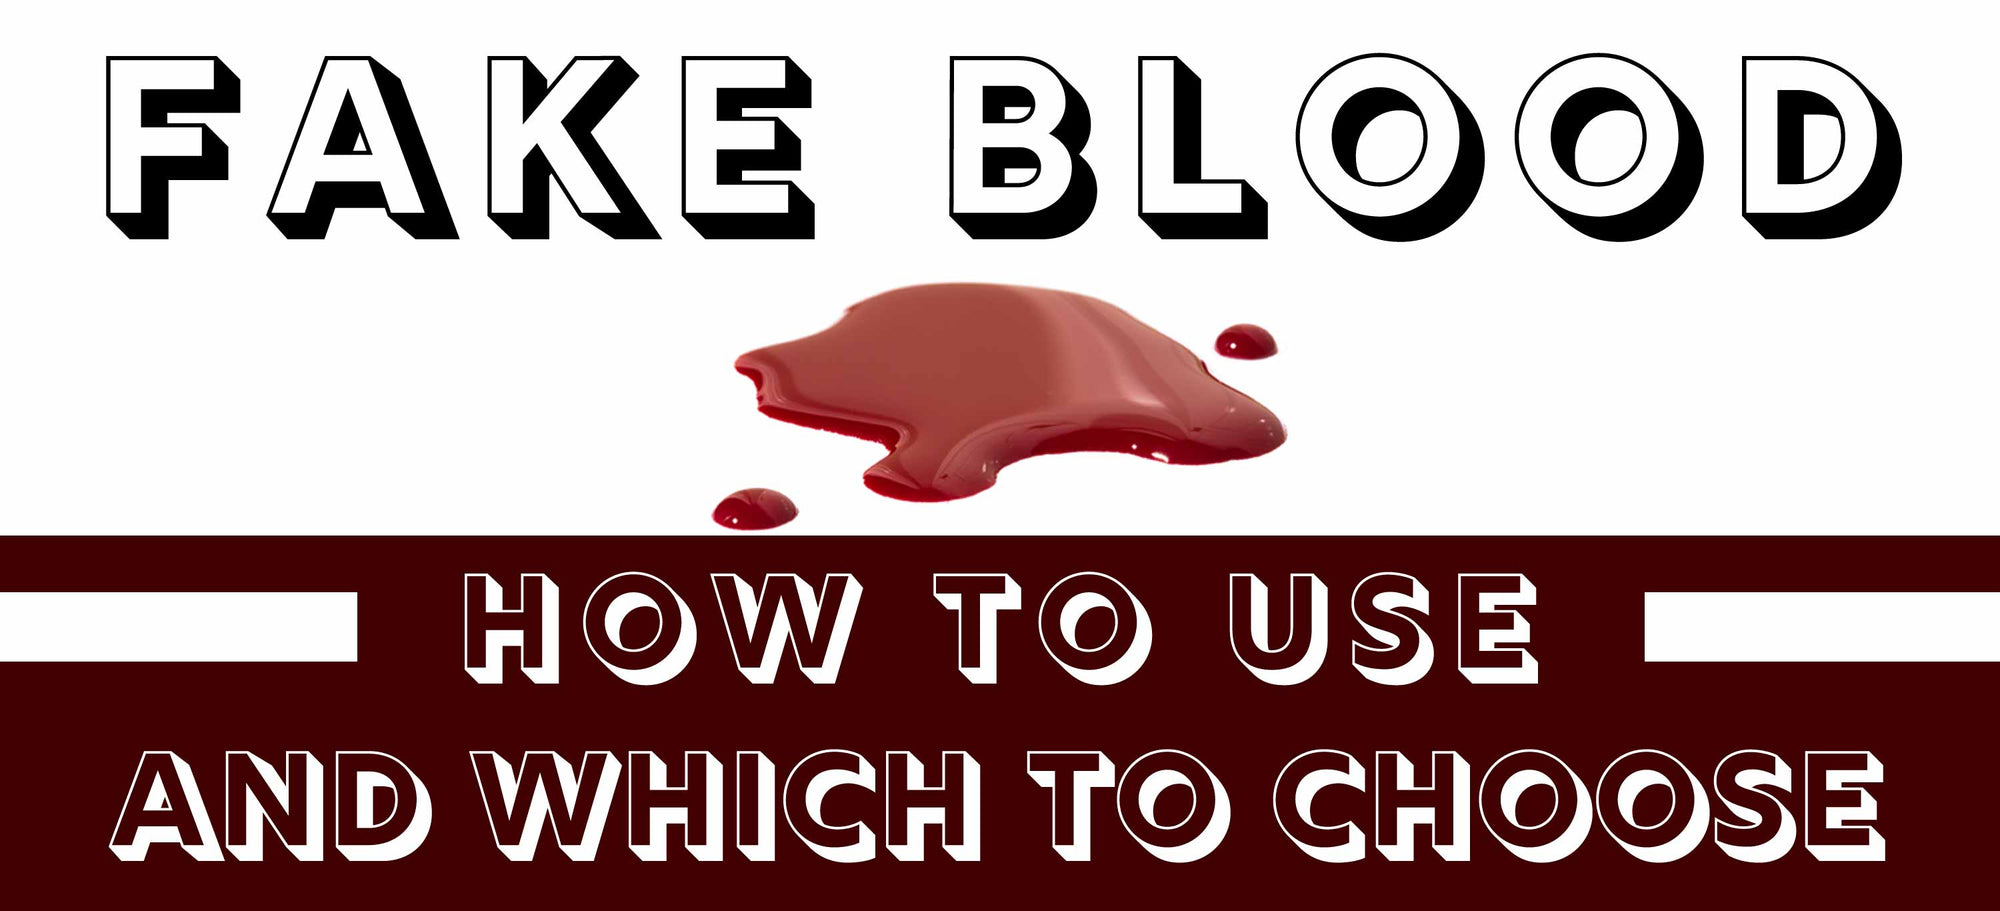 How to use fake blood and which one to choose